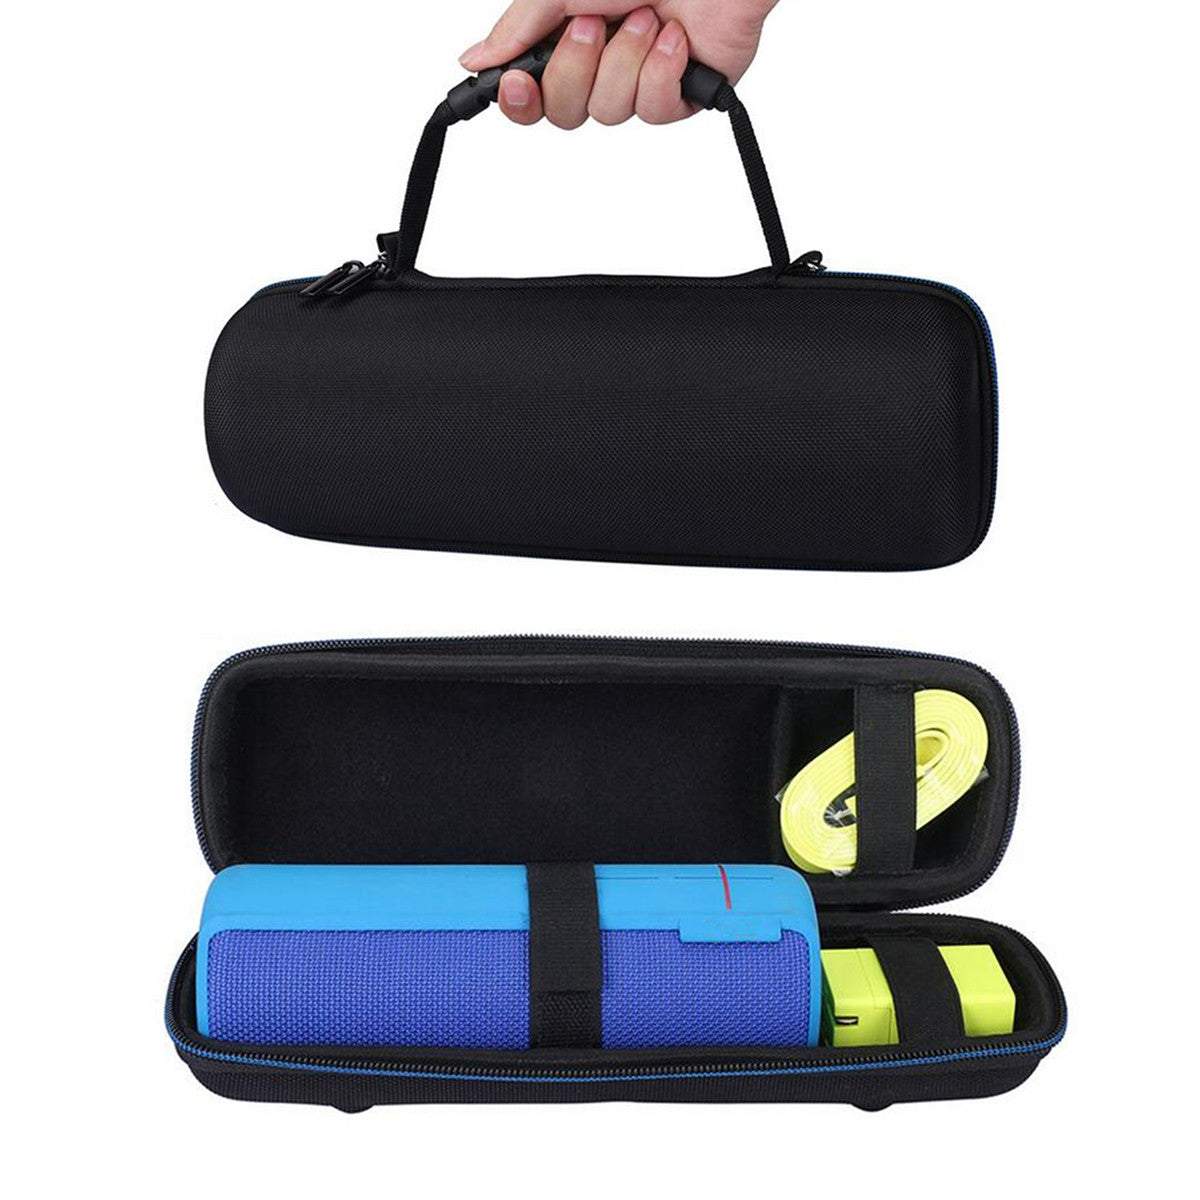 Portable Storage Carry Bag Hard Case Box Pouch For Logitech UE BOOM 2 1 Speaker